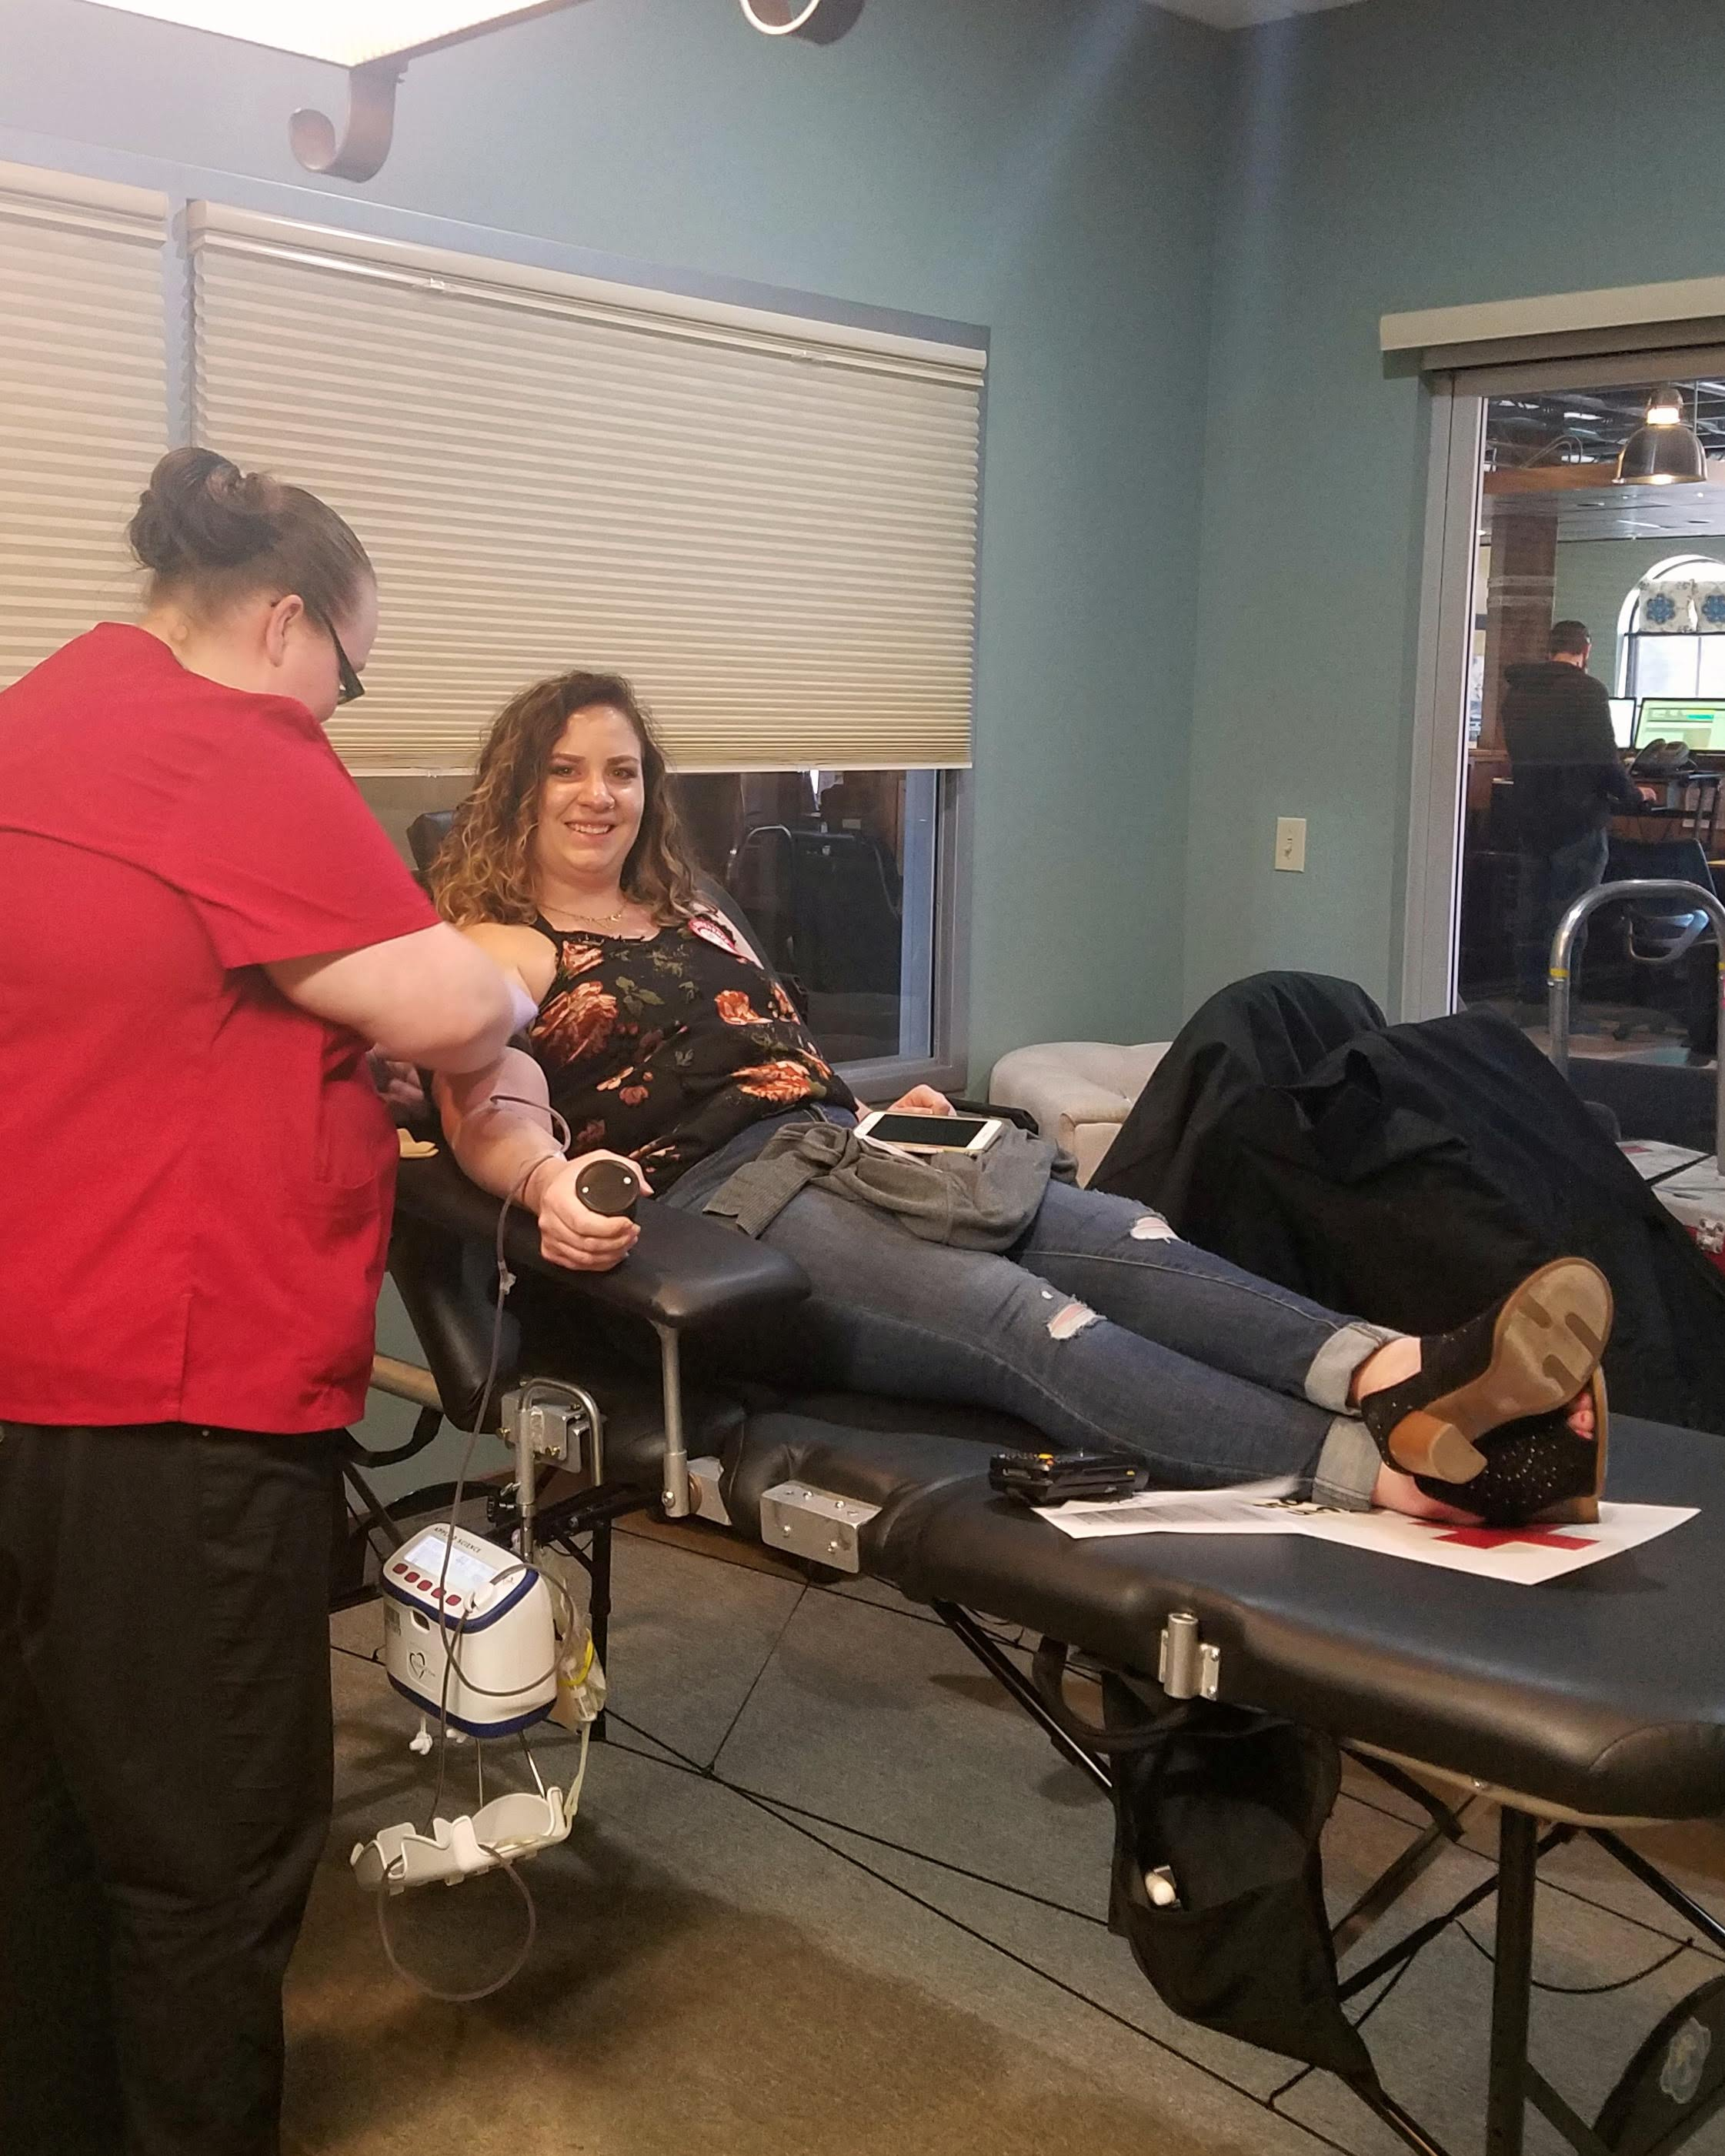 Rachel Bauman, TRG's Bond Claims Manager, has a rare blood type and has donated with the Red Cross 17 times